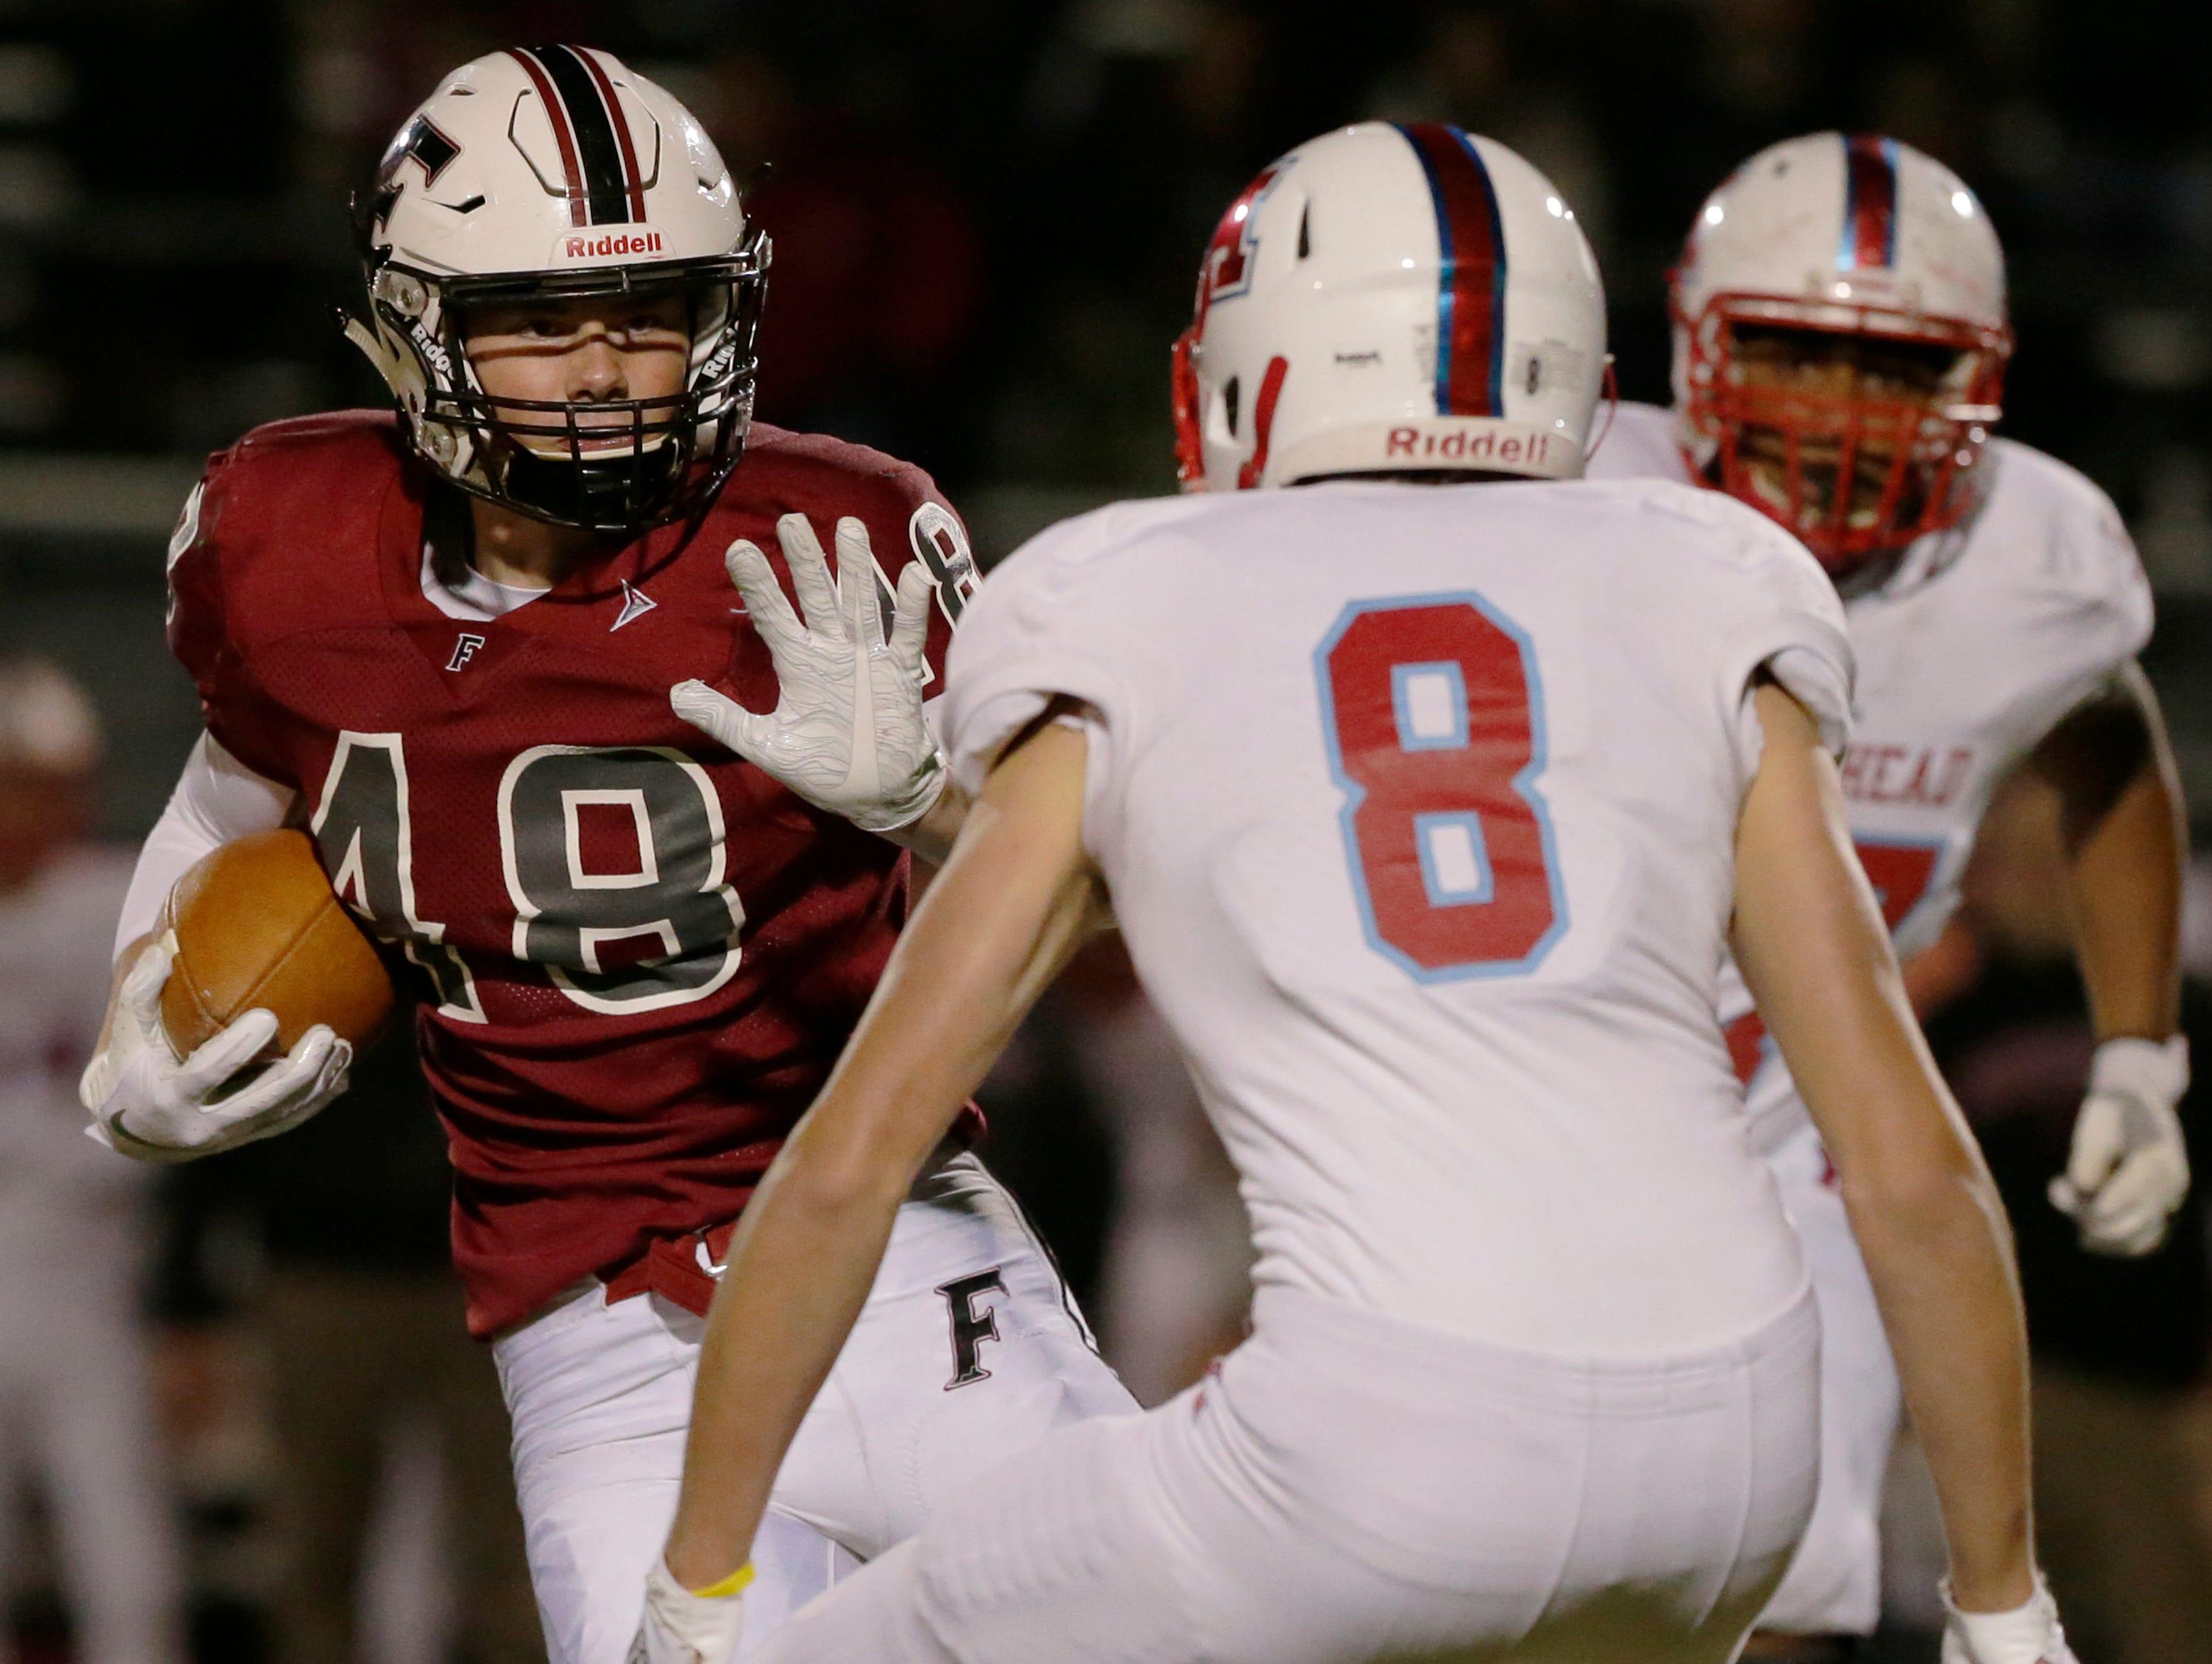 Fond du Lac's Adam Hopper runs the ball against Arrowhead's Jonathan Witter during their game.  Fond du Lac Cardinals played Arrowhead Warhawks in WIAA football playoff sectionals, Friday, Oct. 26, 2018, at Fruth Field in Fond du Lac.   Fond du Lac won 28 - 22.Joe Sienkiewicz/USA Today NETWORK-Wisconsin